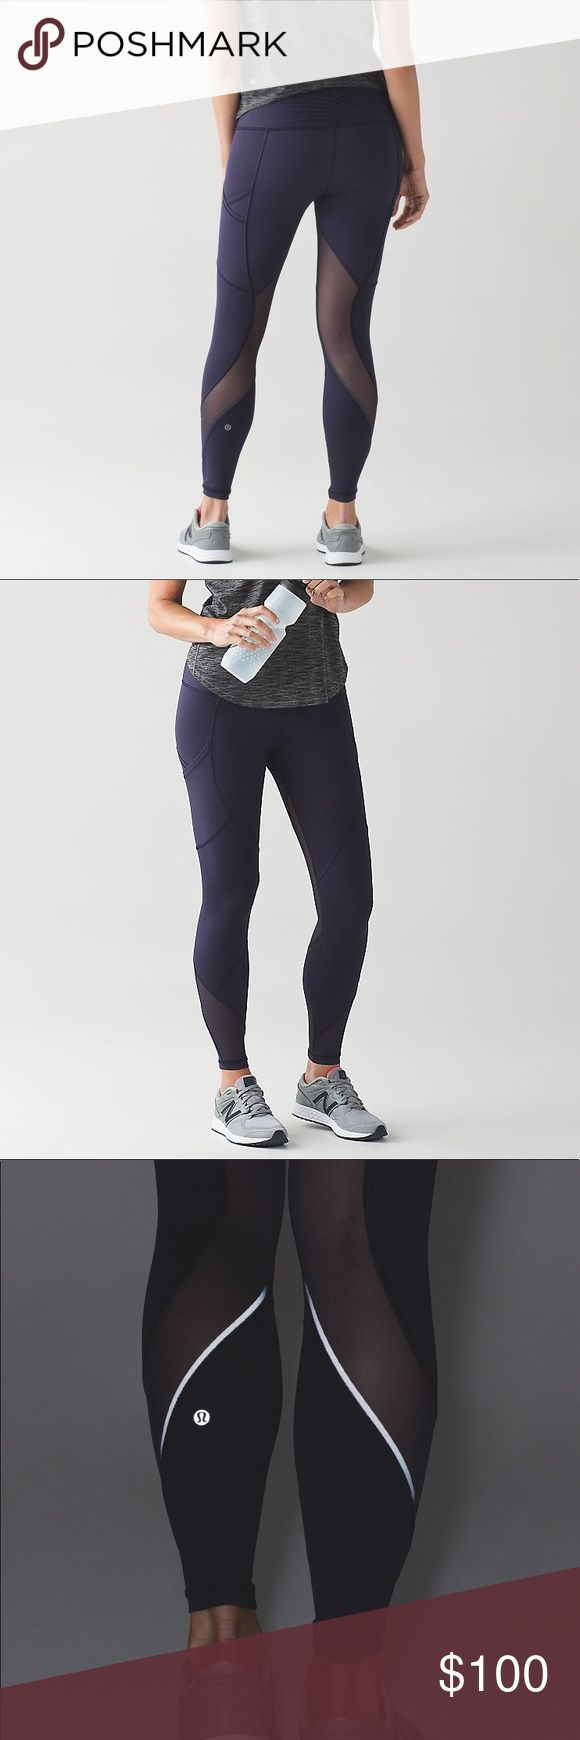 Lululemon Outrun Tight Size 6 Deep Indigo RARE Worn 1 time. Like new. These pants are soo cute and can be worn with a casual outfit or to go to the gym. No lowball offers. lululemon athletica Pants Leggings